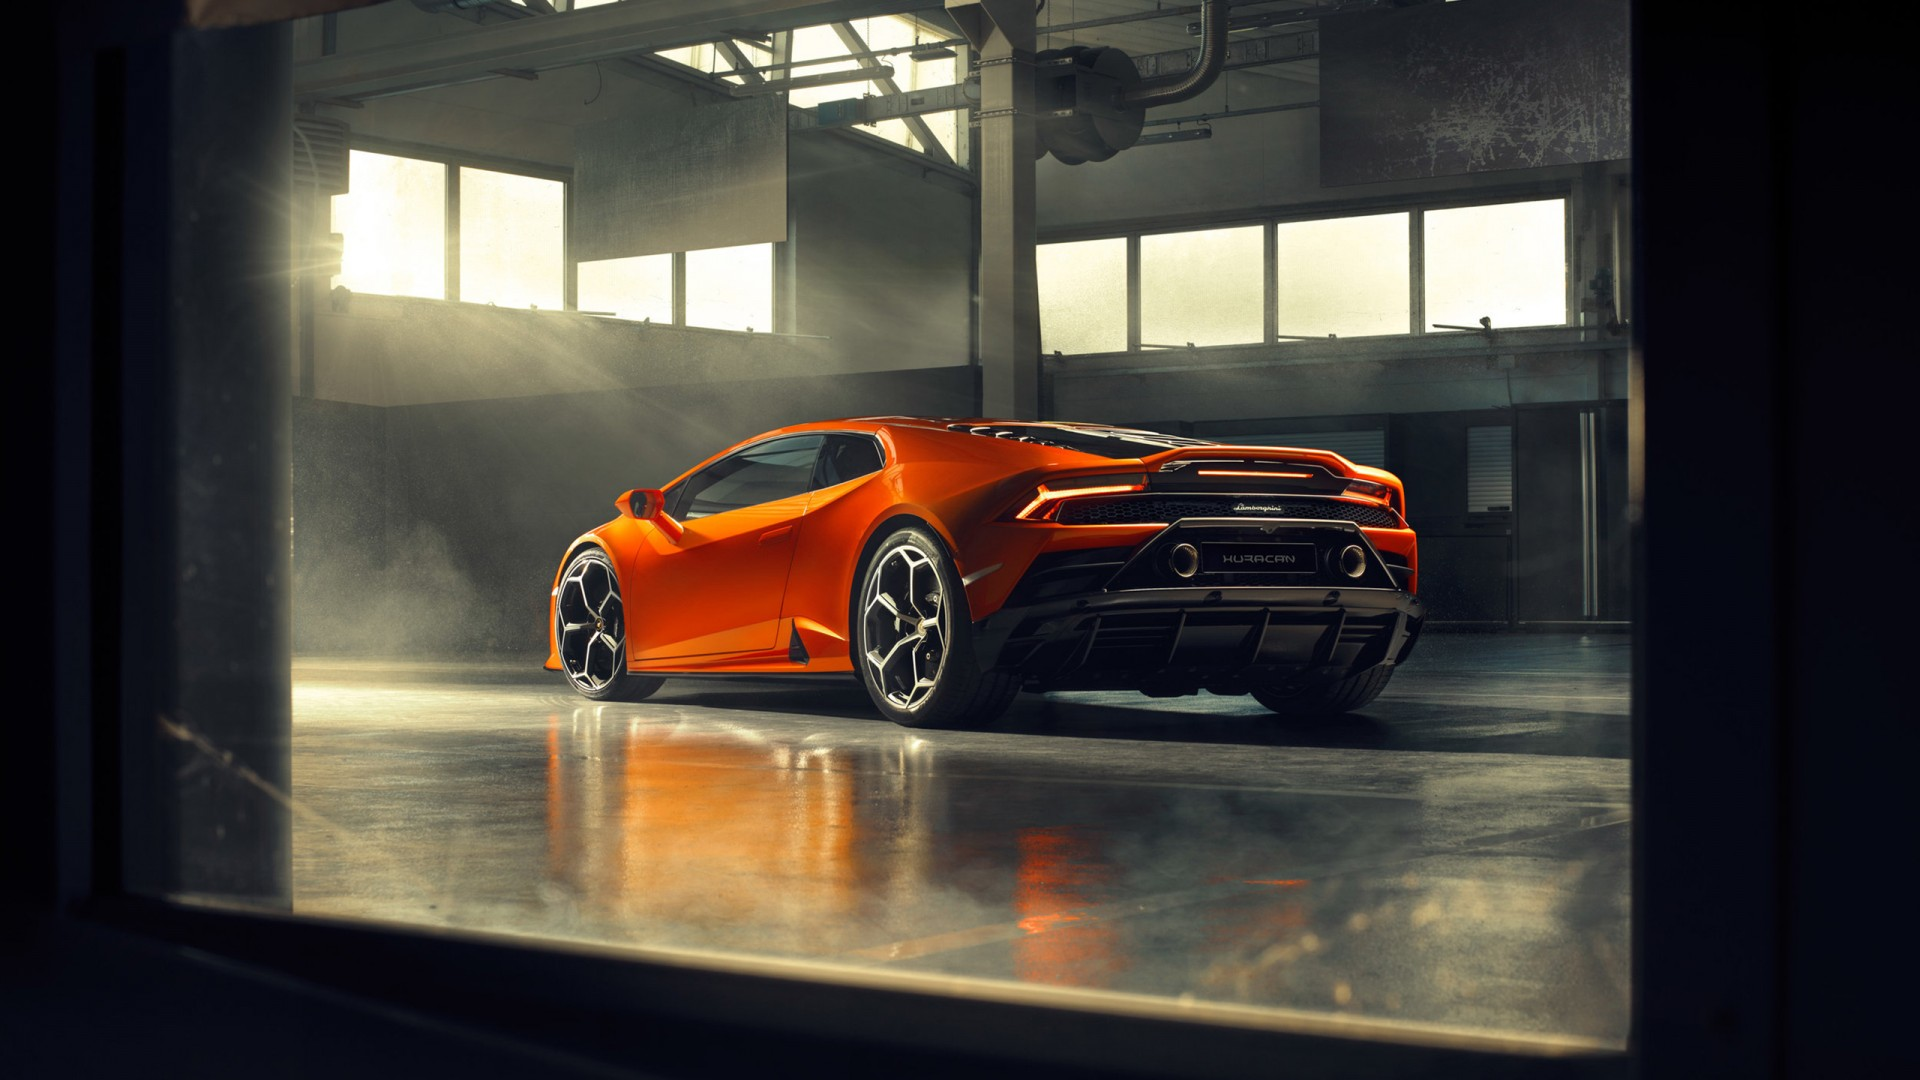 Lamborghini Huracan Evo 2019 4k 2 Wallpaper Hd Car Wallpapers Id 11878